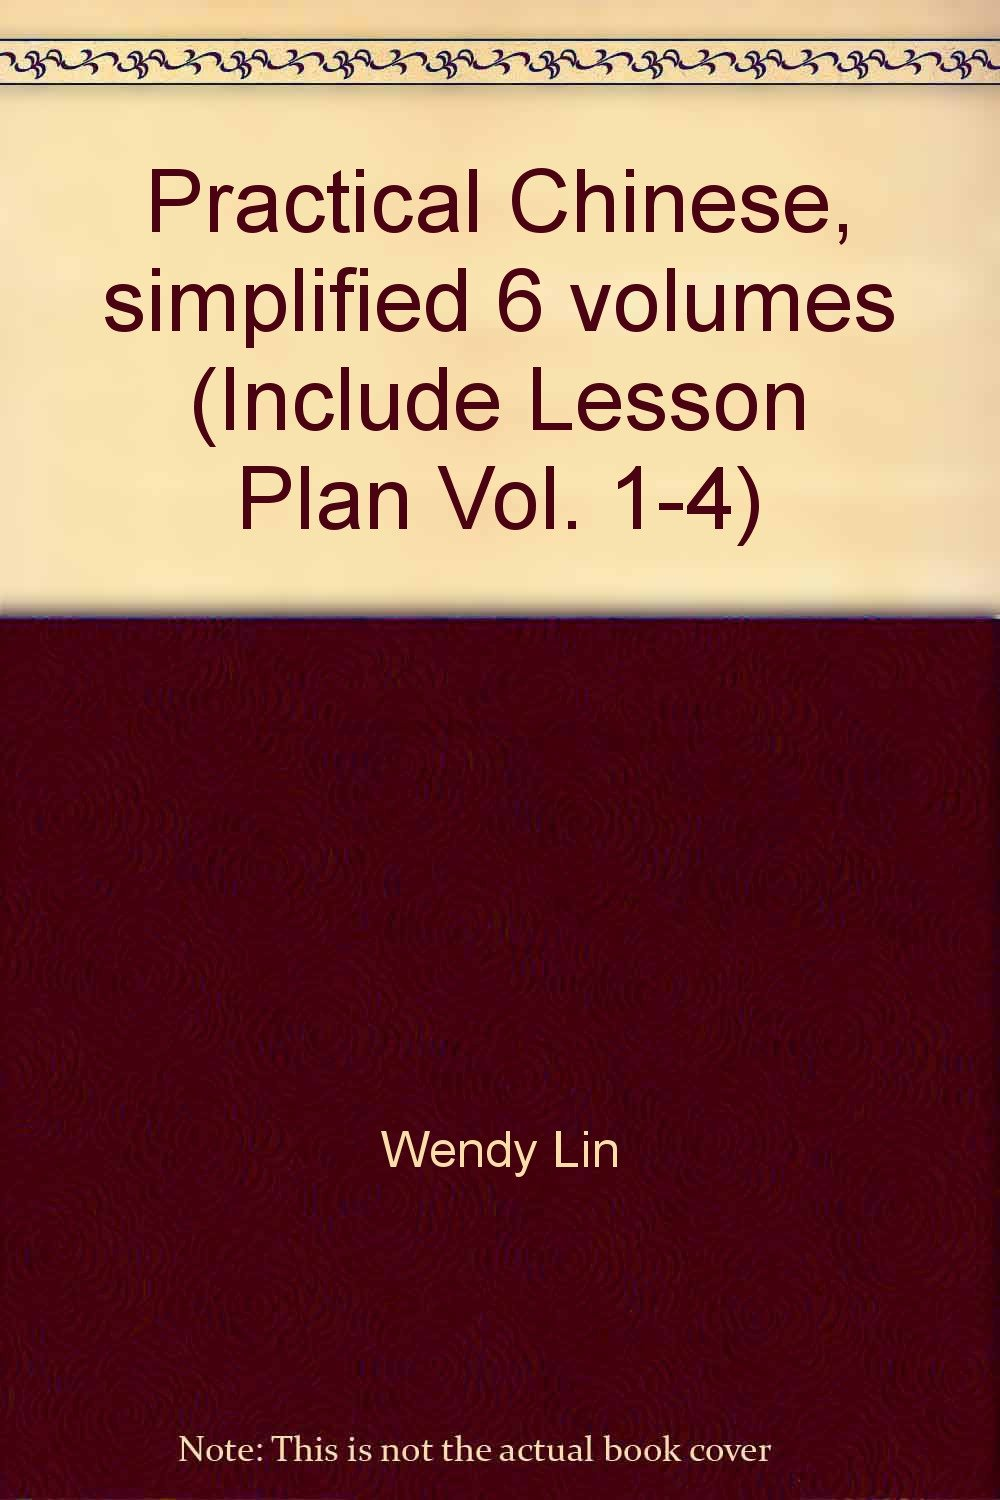 Download Practical Chinese, simplified 6 volumes (Include Lesson Plan Vol. 1-4) (Chinese Edition) pdf epub